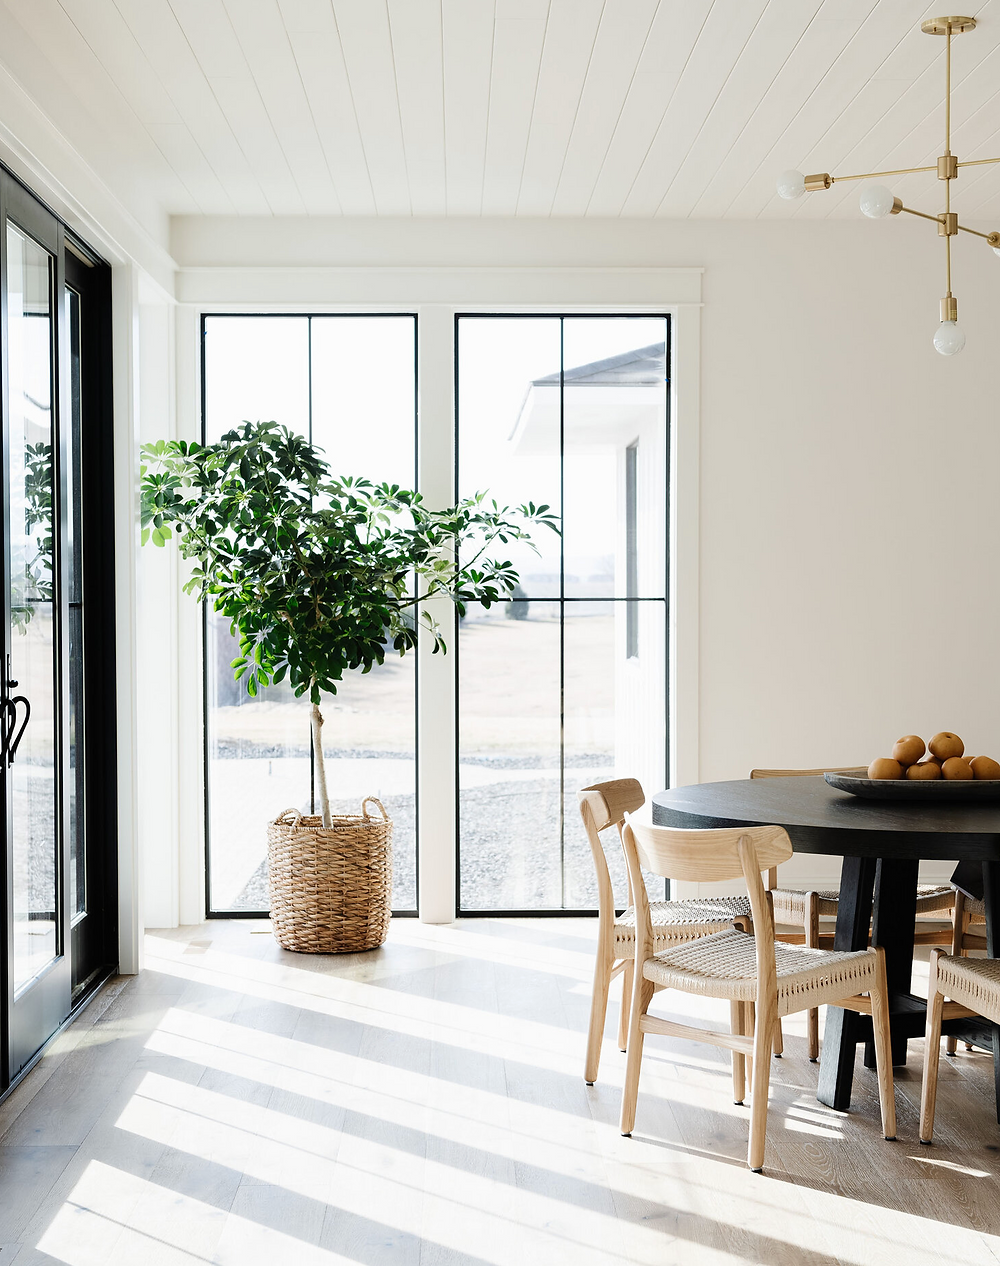 A modern dining room with large black windows, a tall plant in a basket and a mid century style dining table and chairs.